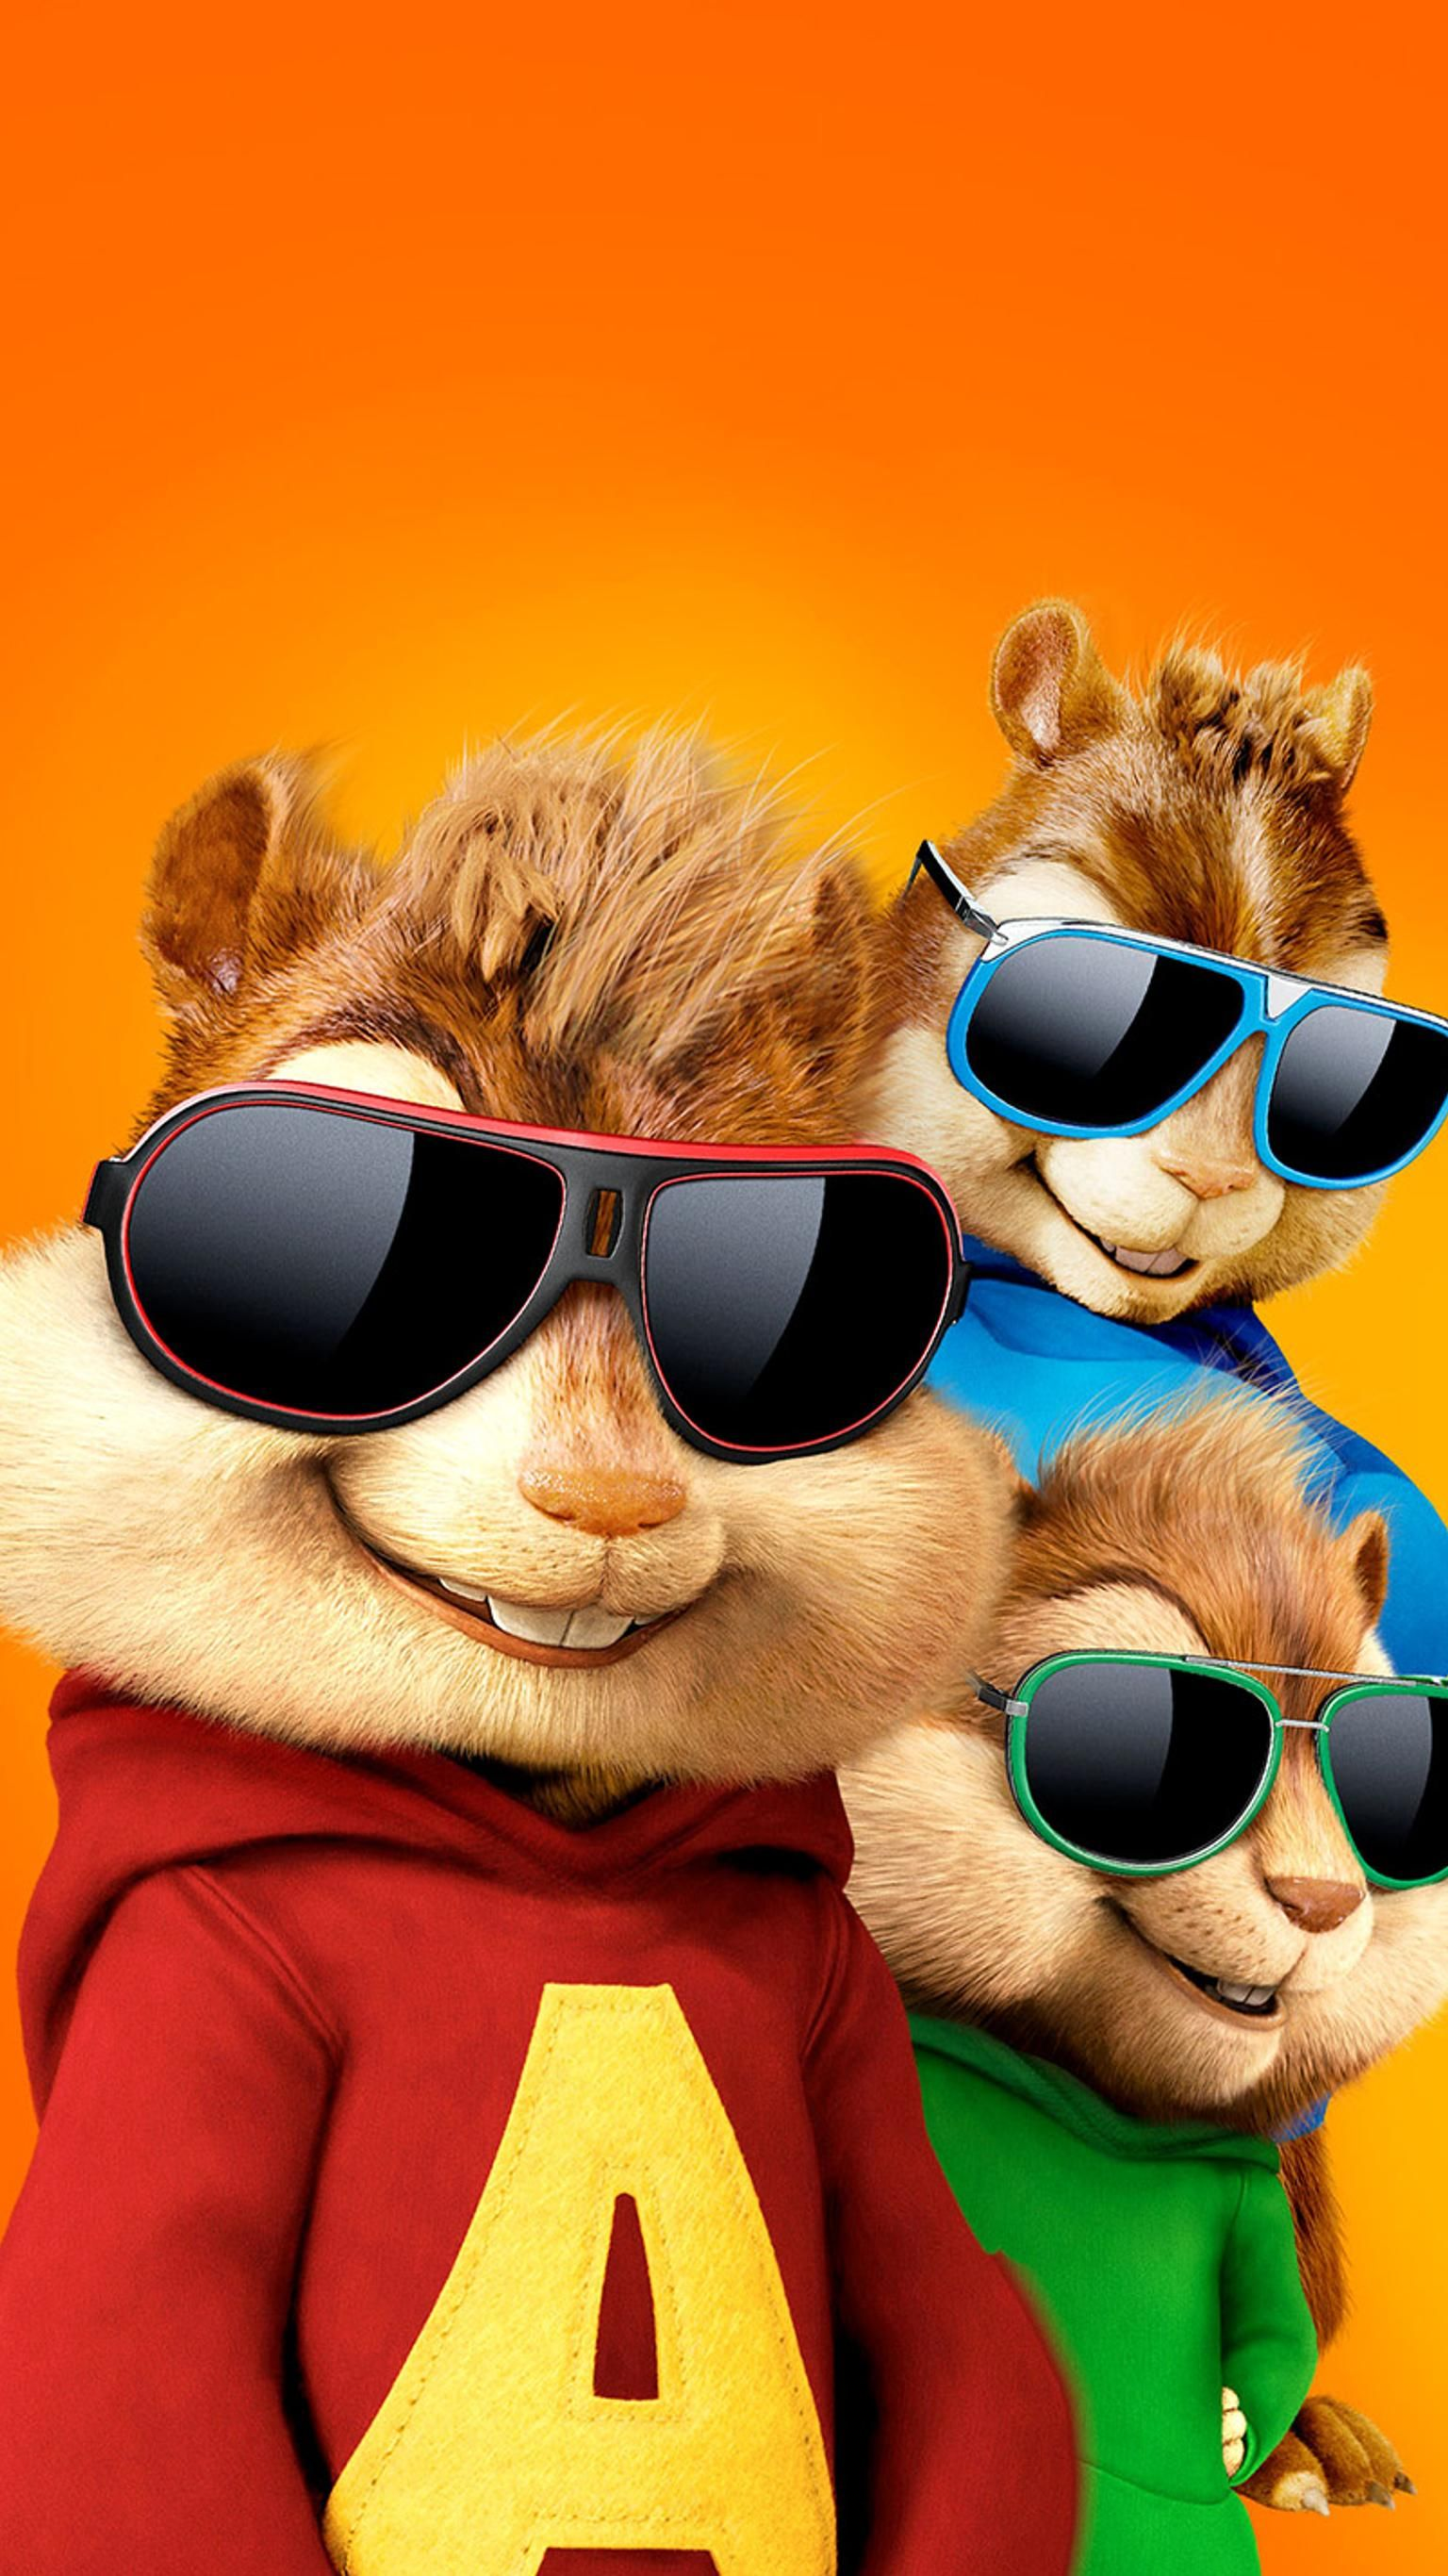 Alvin And The Chipmunks The Road Chip 2015 Phone Wallpaper In